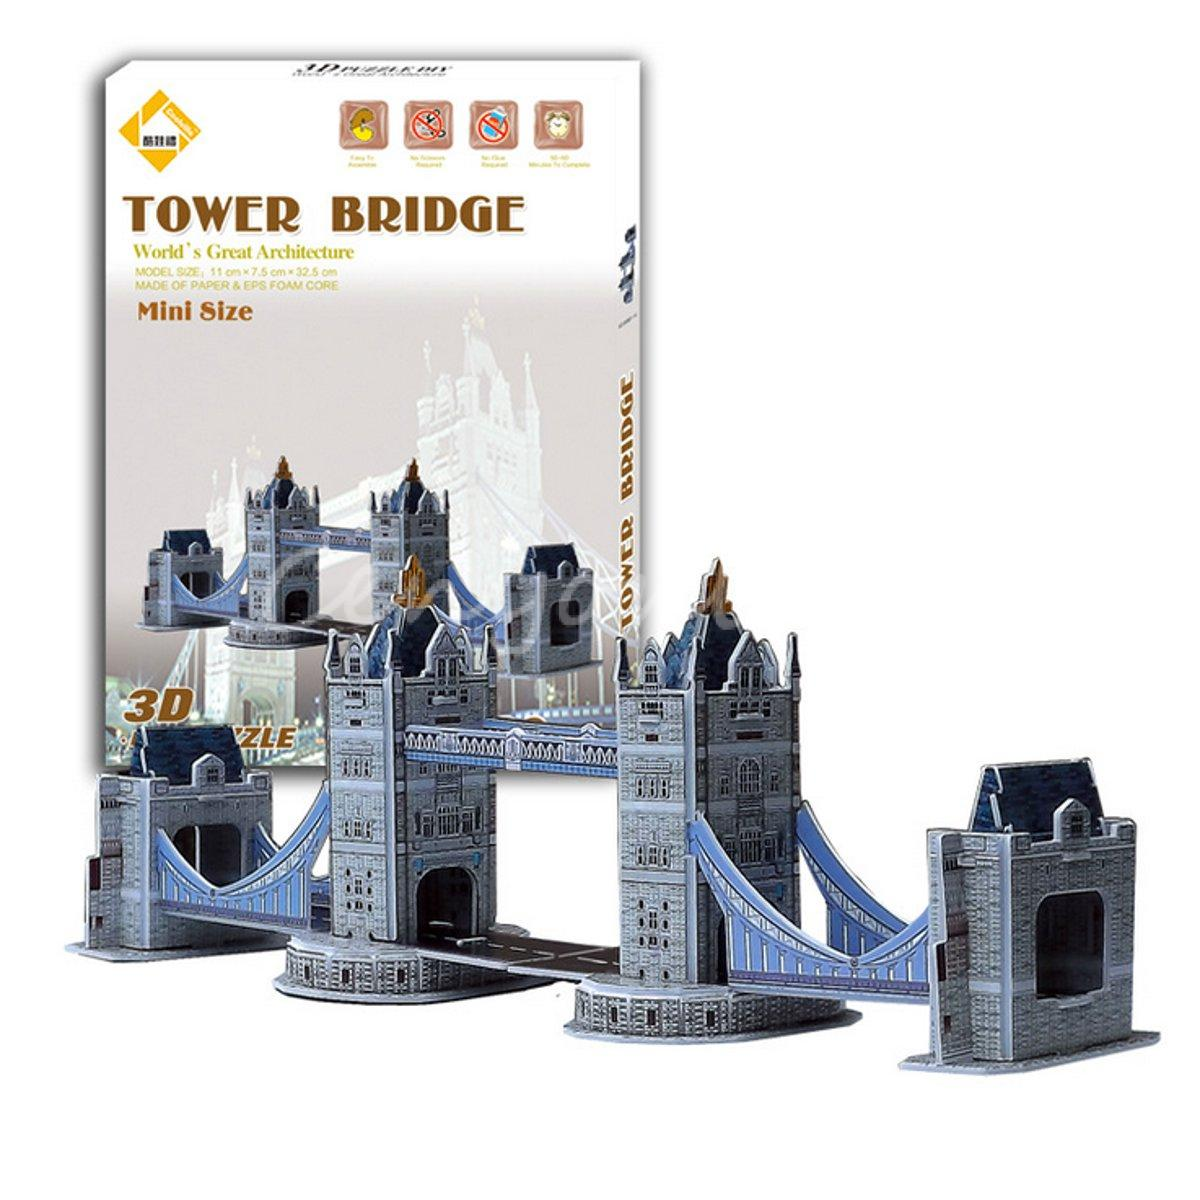 Top Quality Colourful Carboard Jigsaw Model 3D Puzzle Tower Bridge DIY Xmas Gift Toys for childrens day Learning Education(China (Mainland))